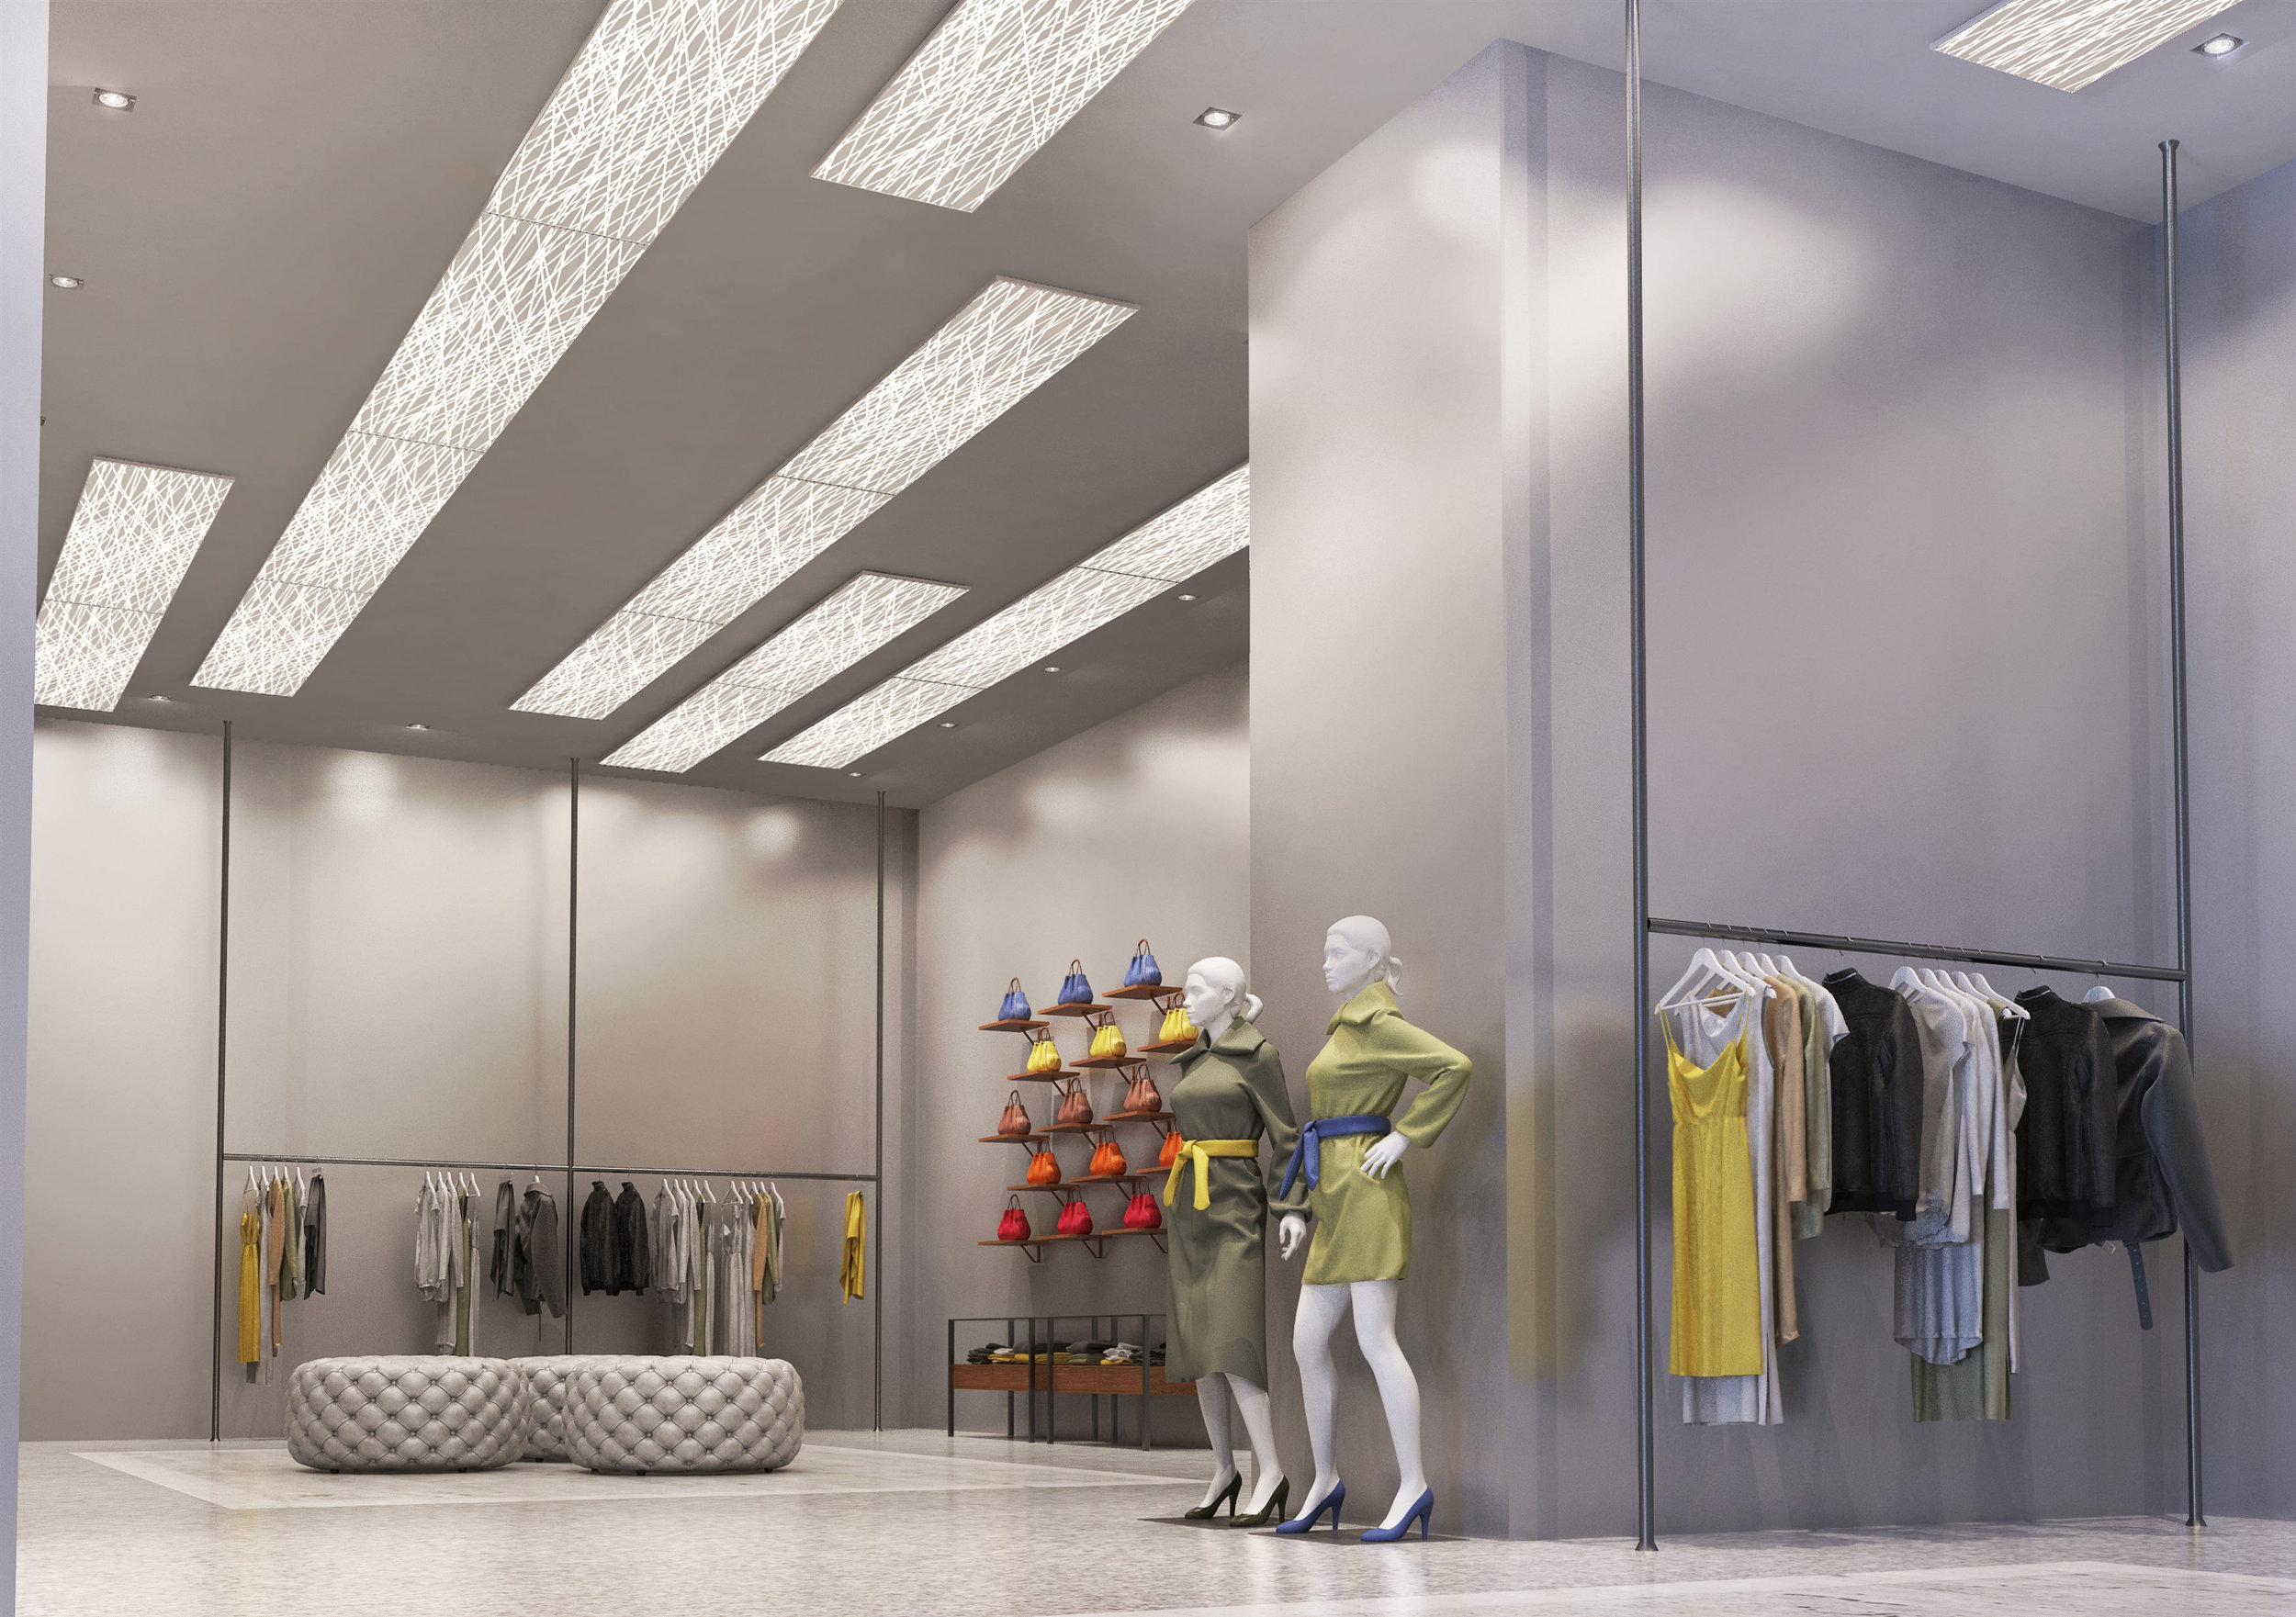 Archilumo panels with an etched pattern give an elegant appearance to this retail space